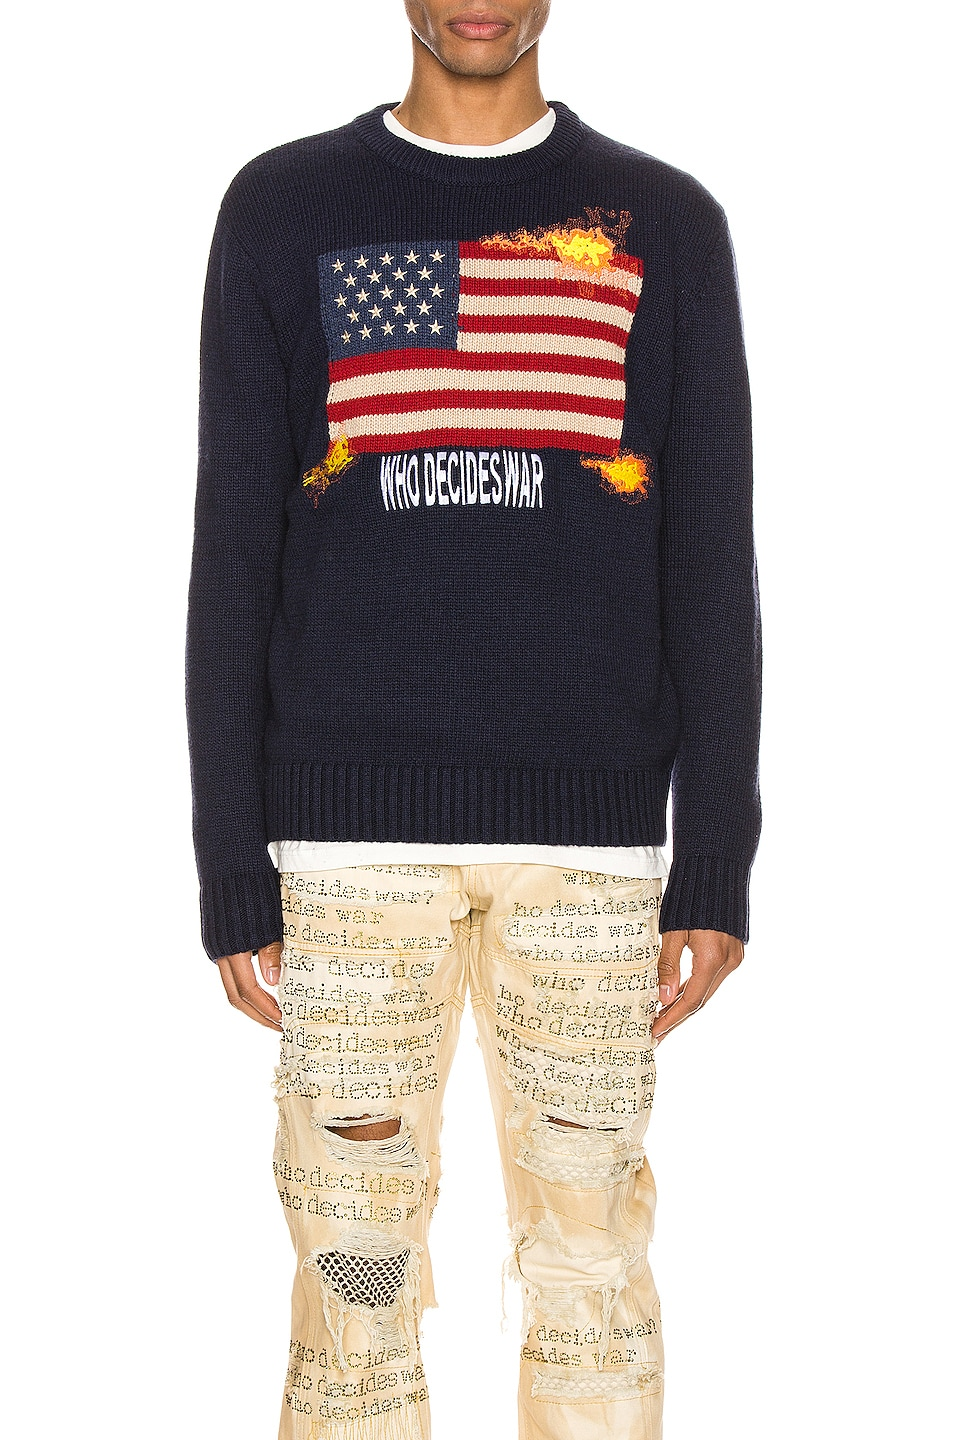 Image 1 of Who Decides War by Ev Bravado Who Decides War Knit Pullover in Navy